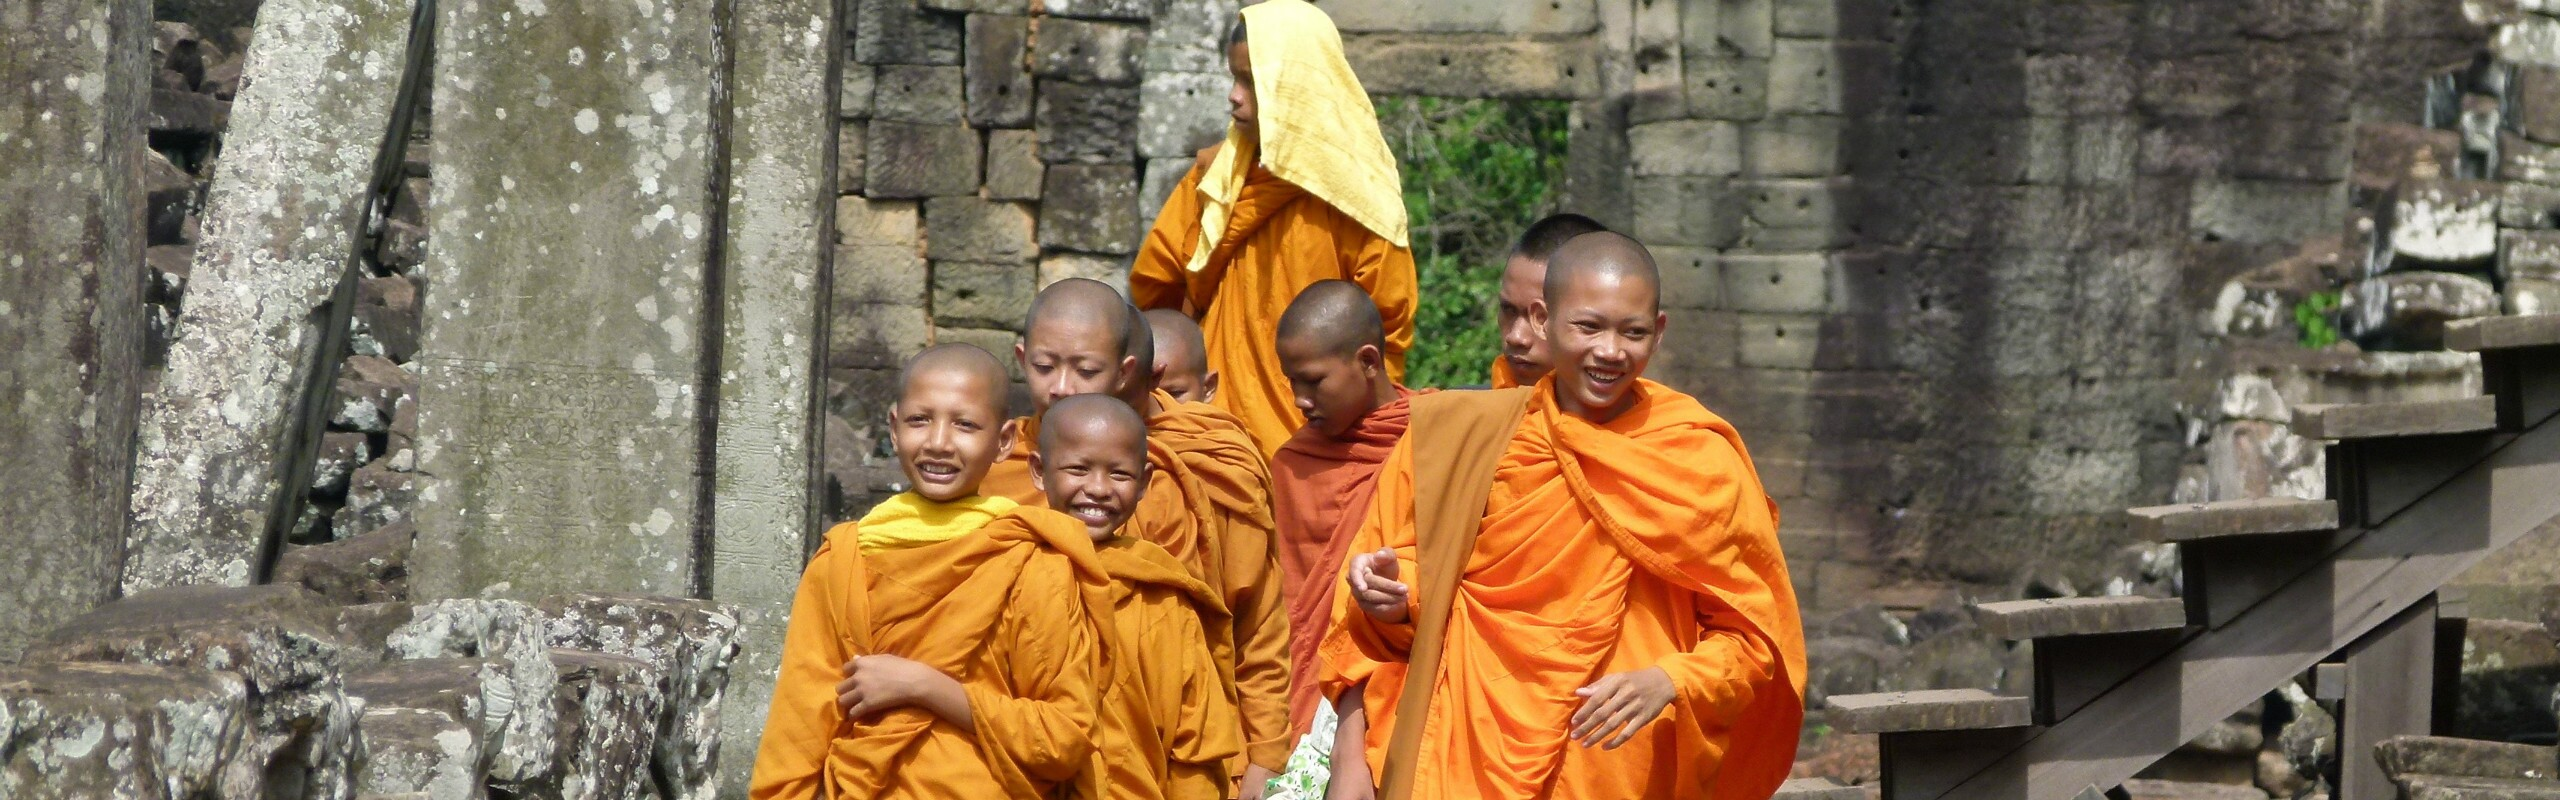 Tips for Avoiding Crowds in Cambodia